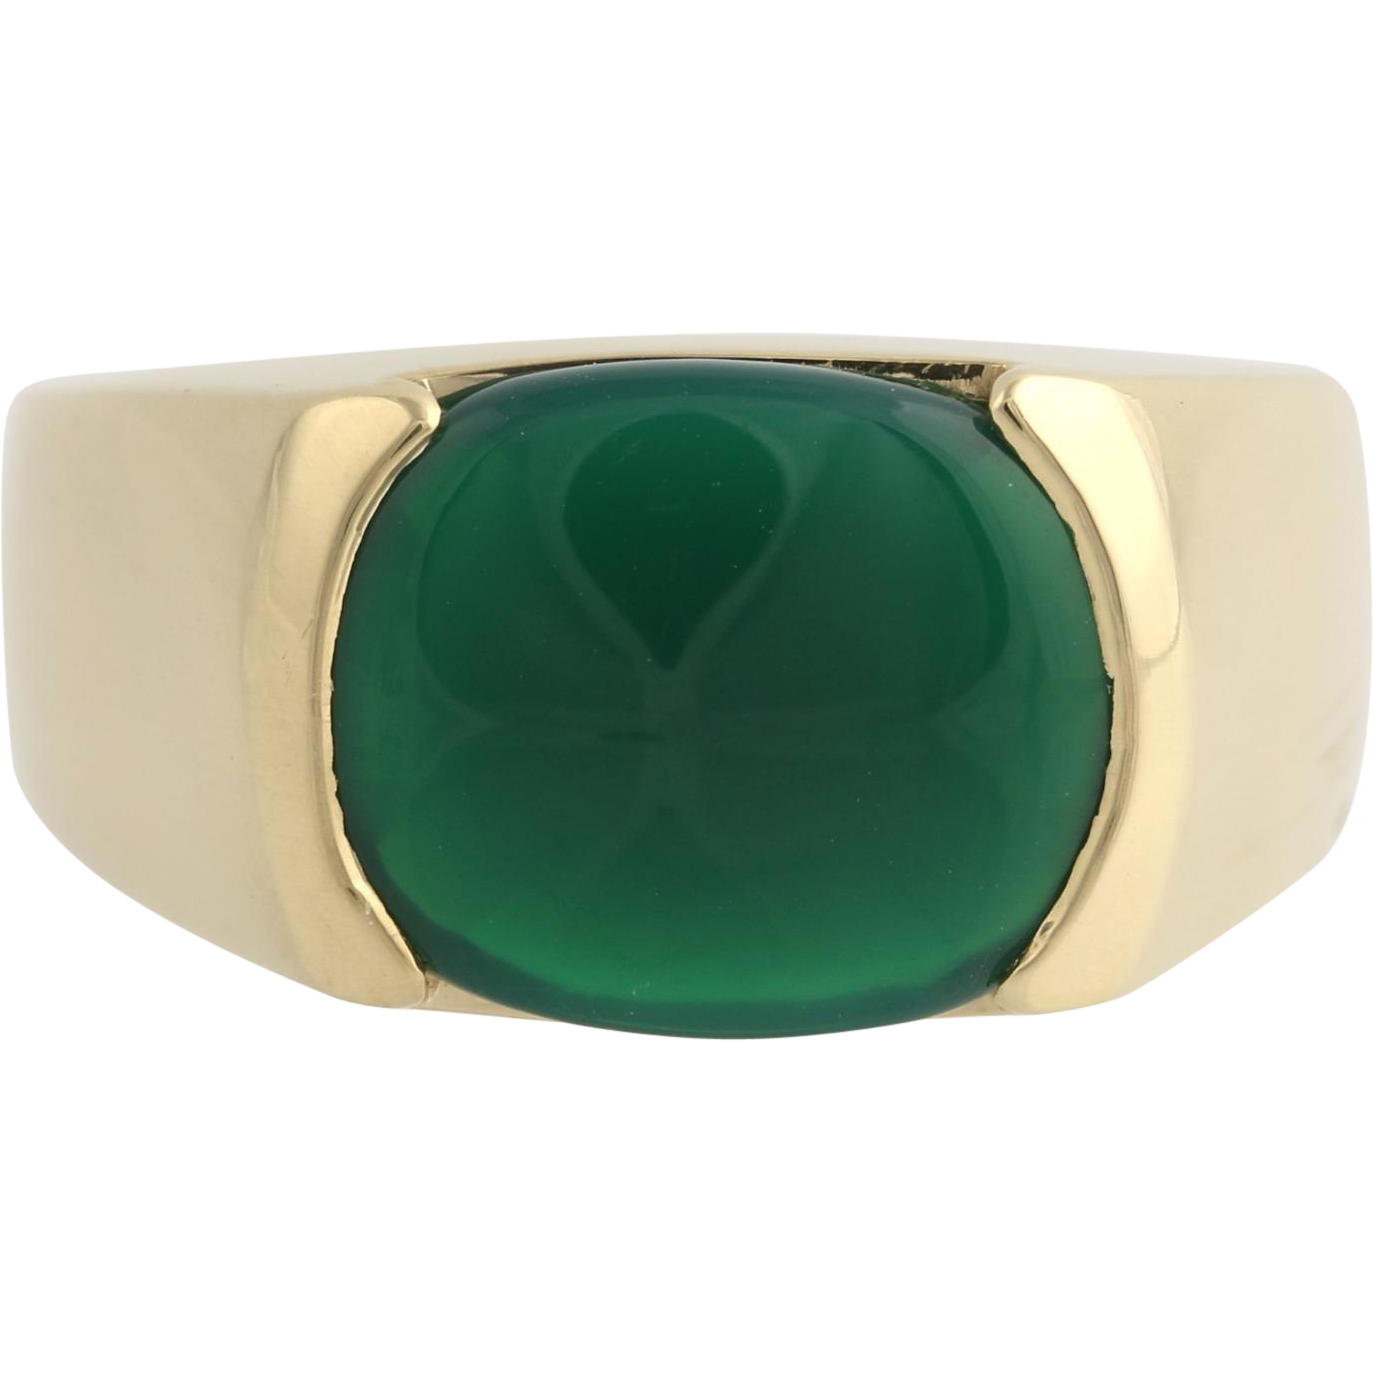 Men's Green Chalcedony Ring - 14k Yellow Gold Solitaire Genuine Polished